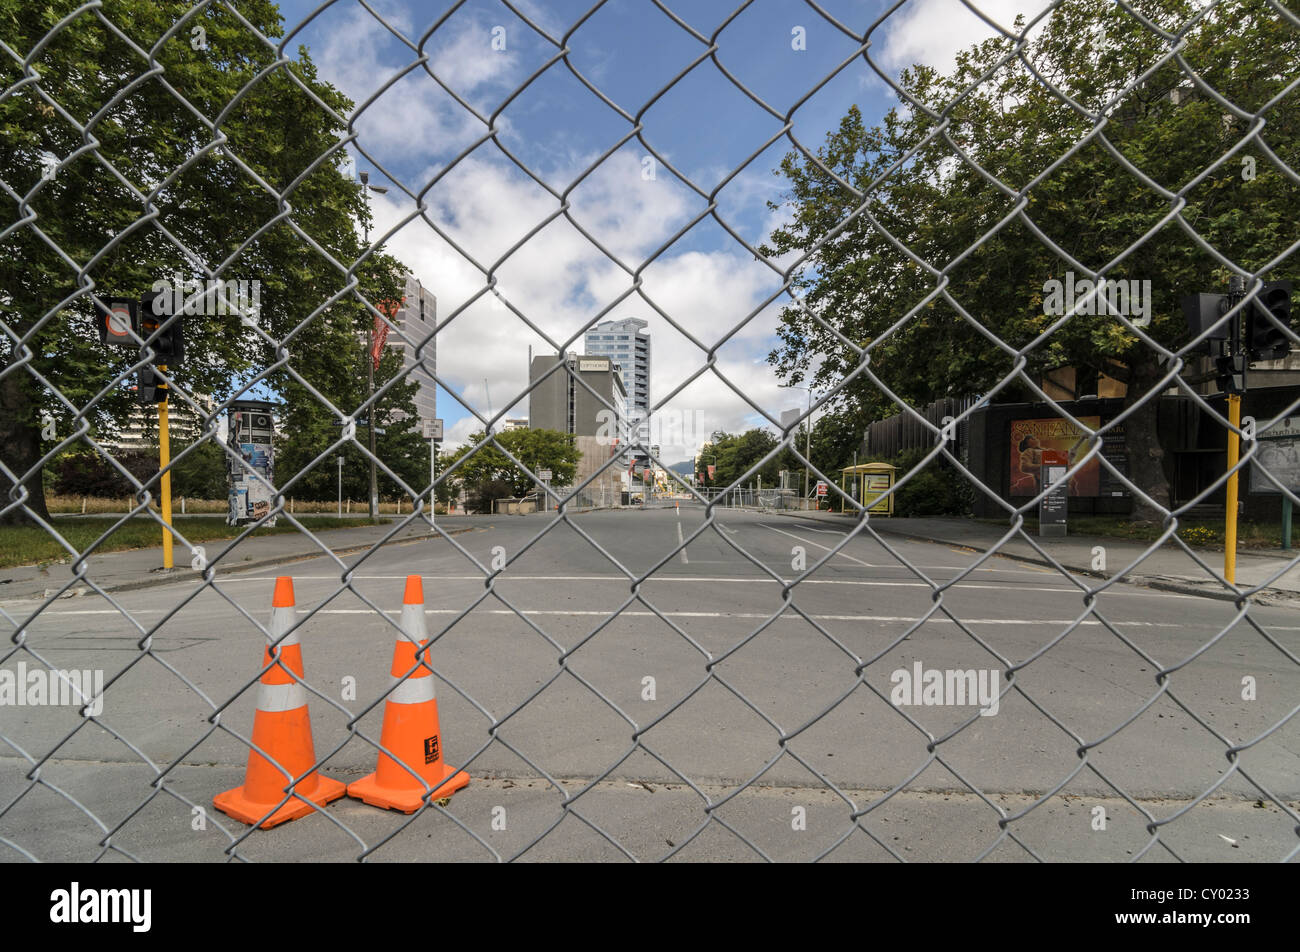 Fence, border of the evacuated CBD Red Zone, city cente of Christchurch, damaged by earthquakes, South Island, New - Stock Image